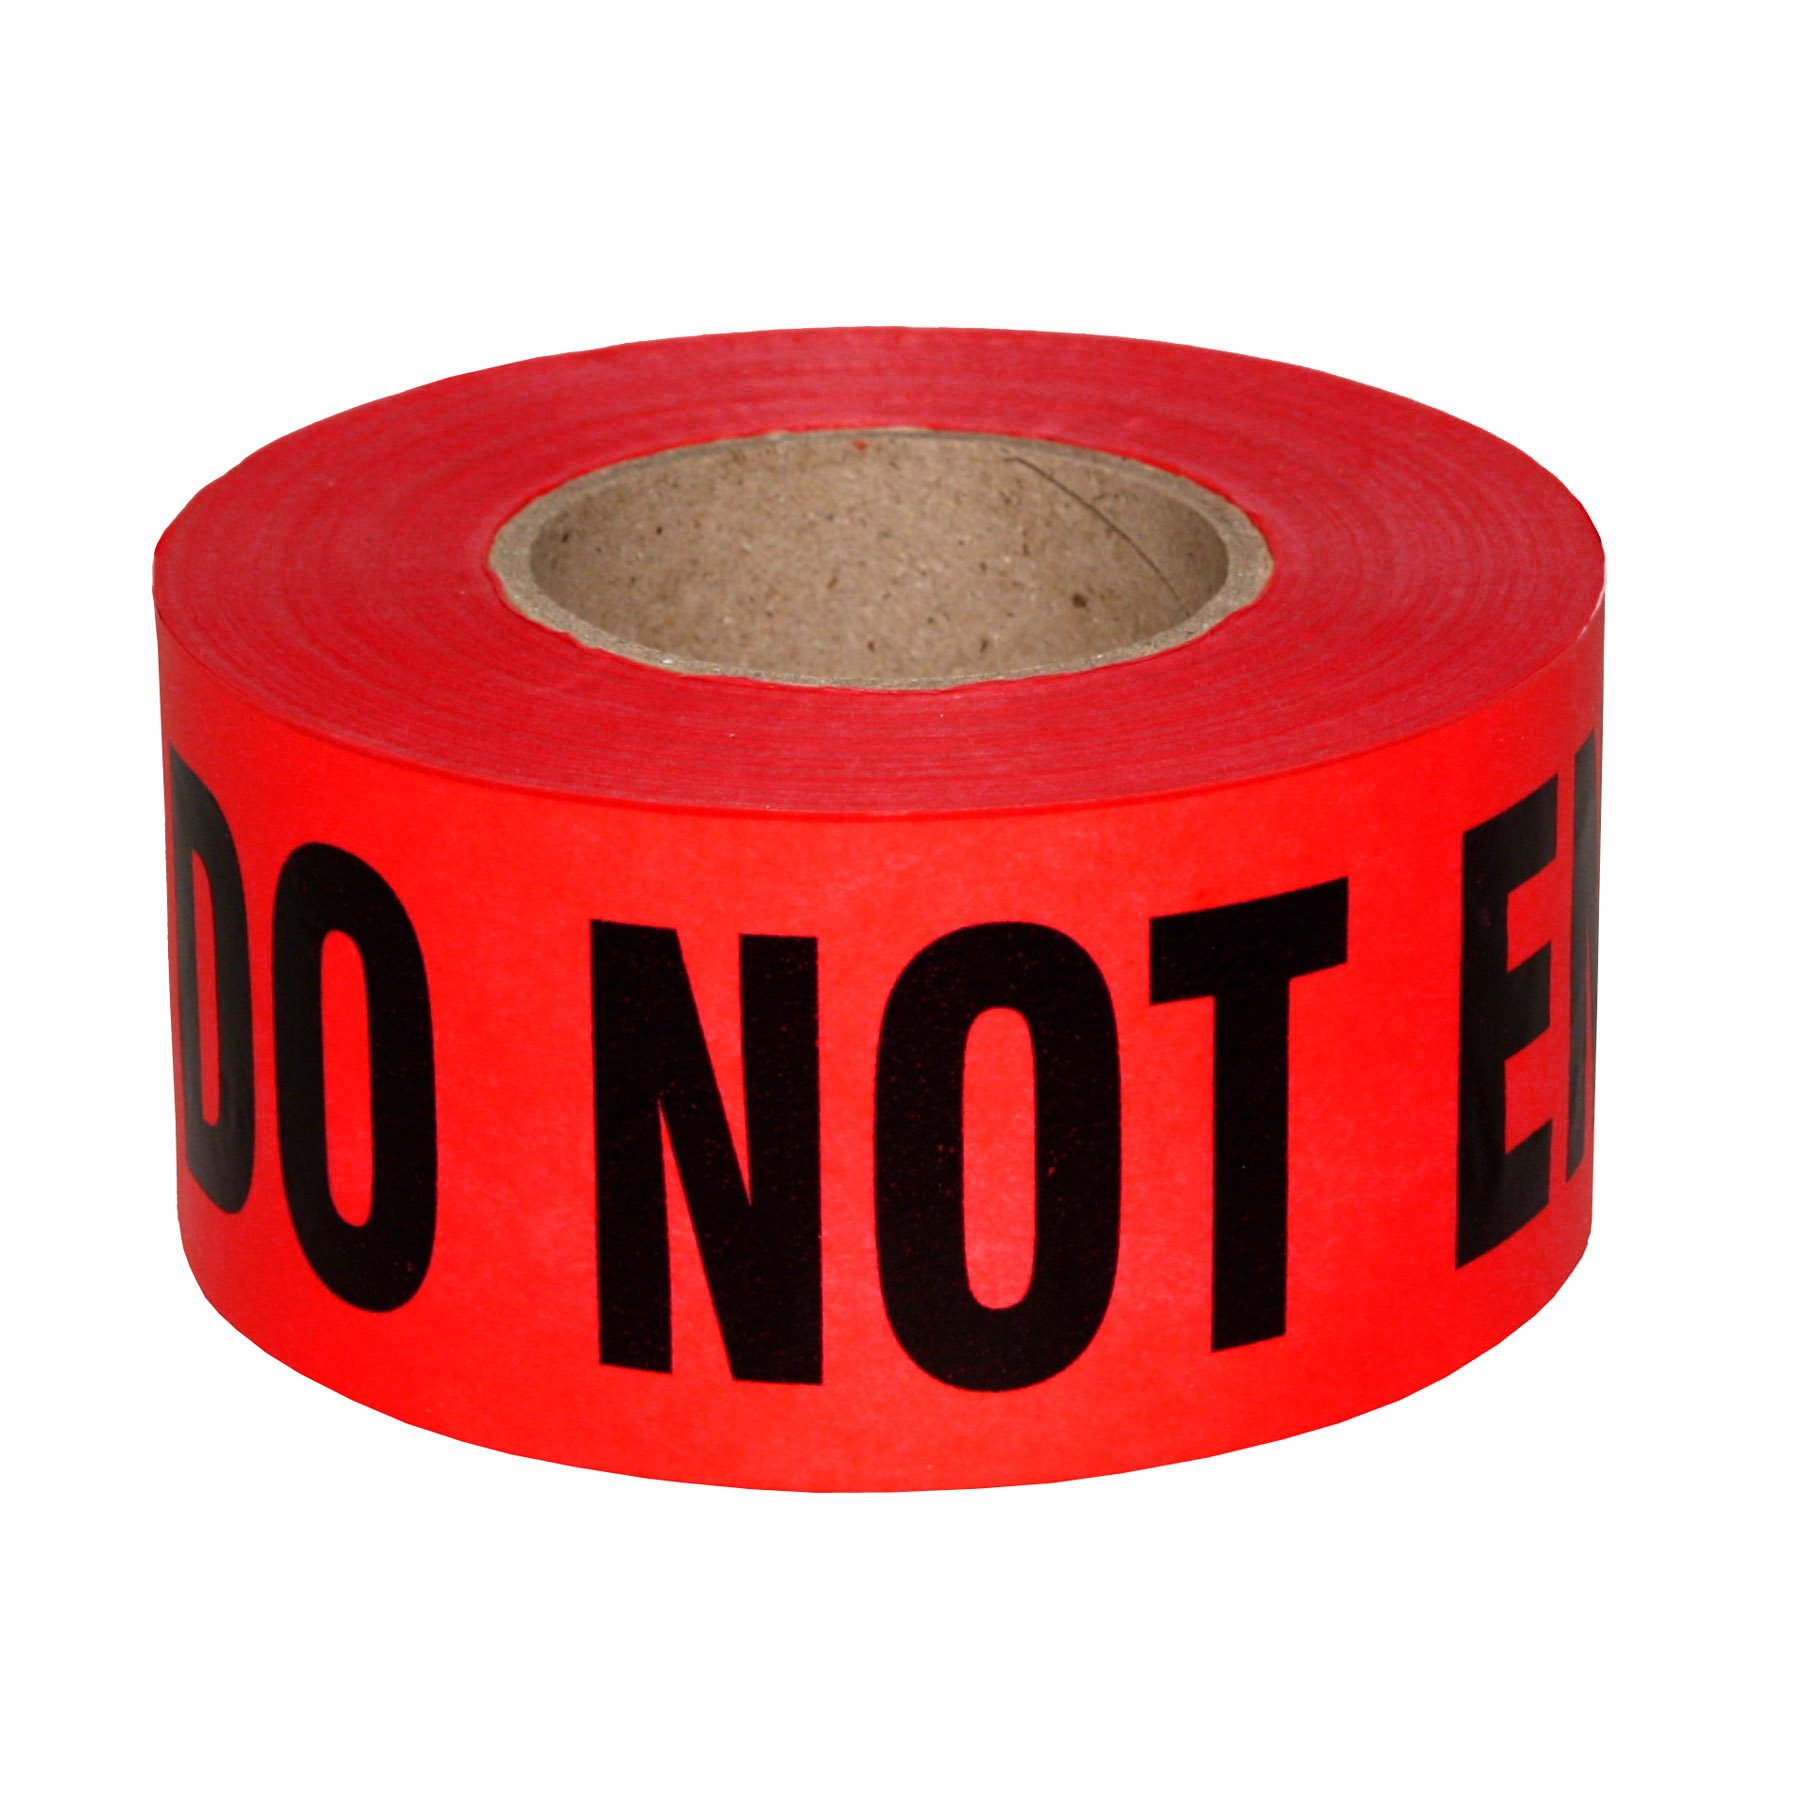 Yellow Caution Barricade Tape 3 X 1000 ft /• Bright Yellow with a Bold Black Print for High Visibility /• 3 wide for Maximum Readability /• Tear Resistant Design /• Caution Tape C/&W